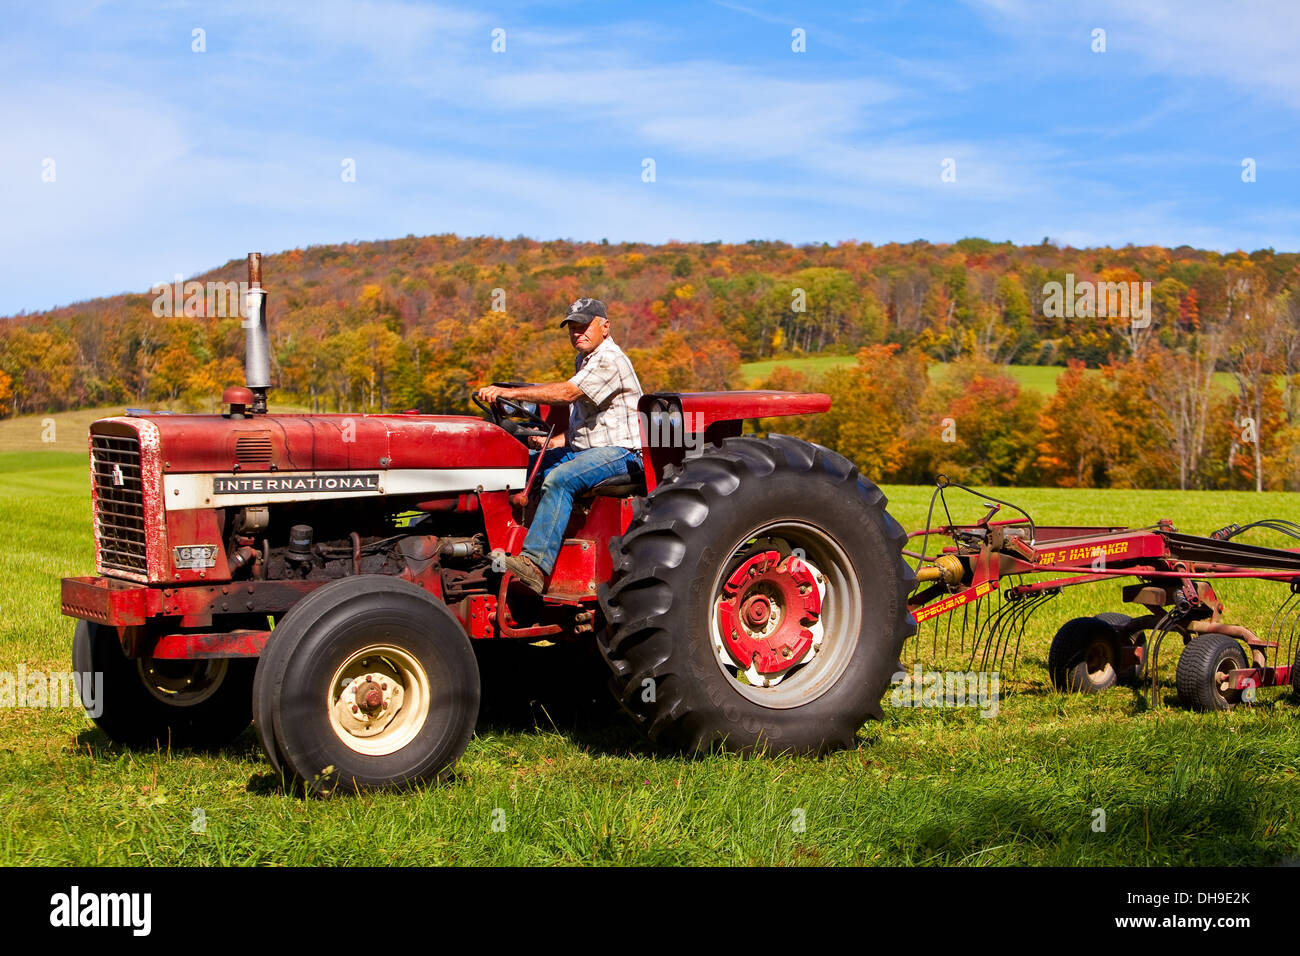 Farmer On Tractor : A man drives tractor on farm in berkshire county